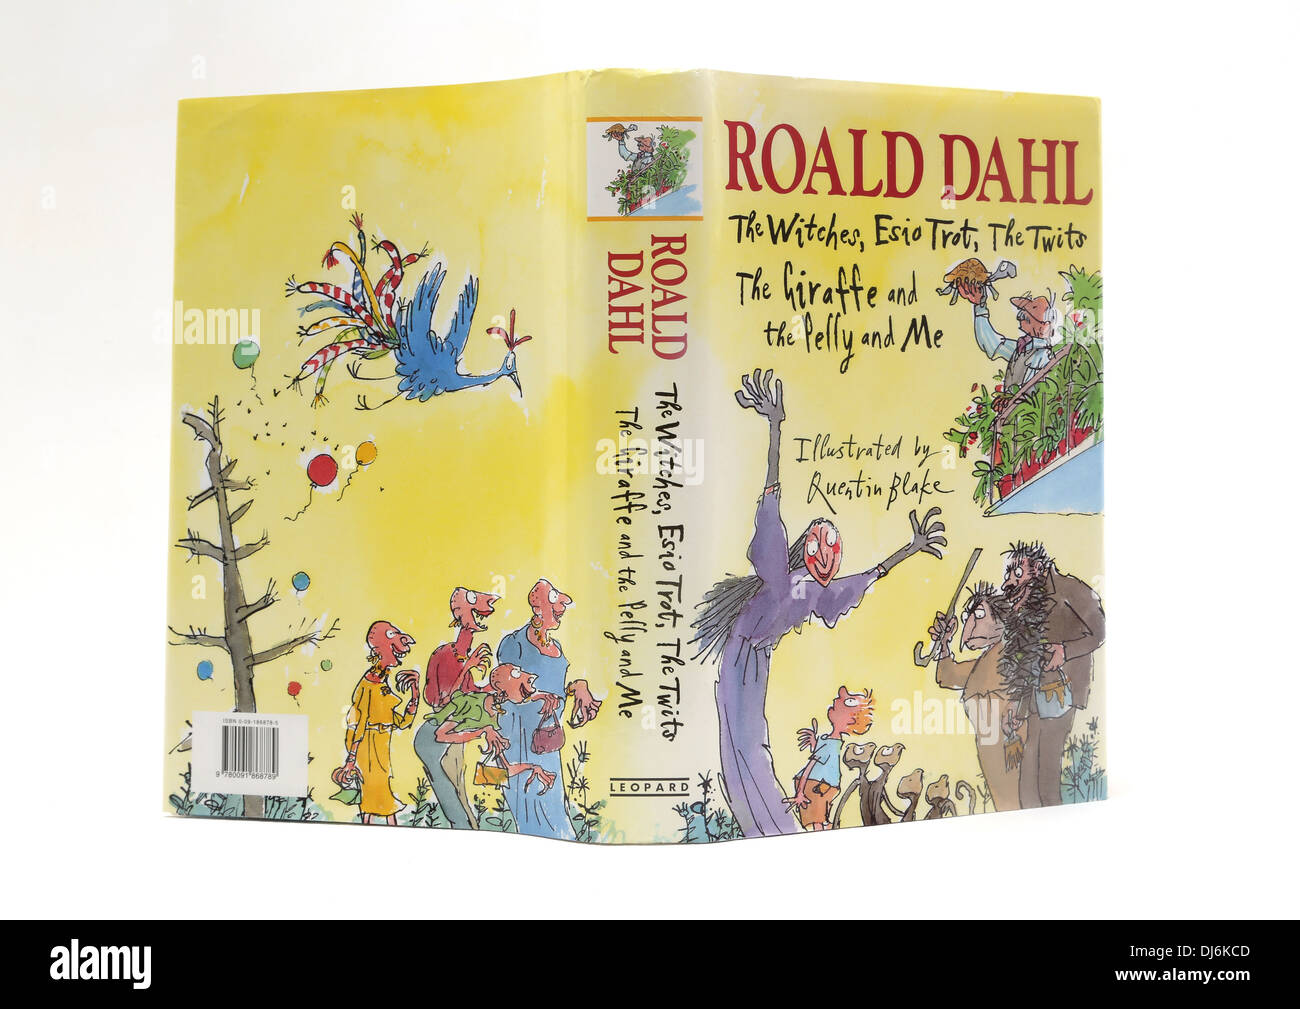 Hardback Book Of Roald Dahl Stories Illustrations By Quentin Blake - Stock Image